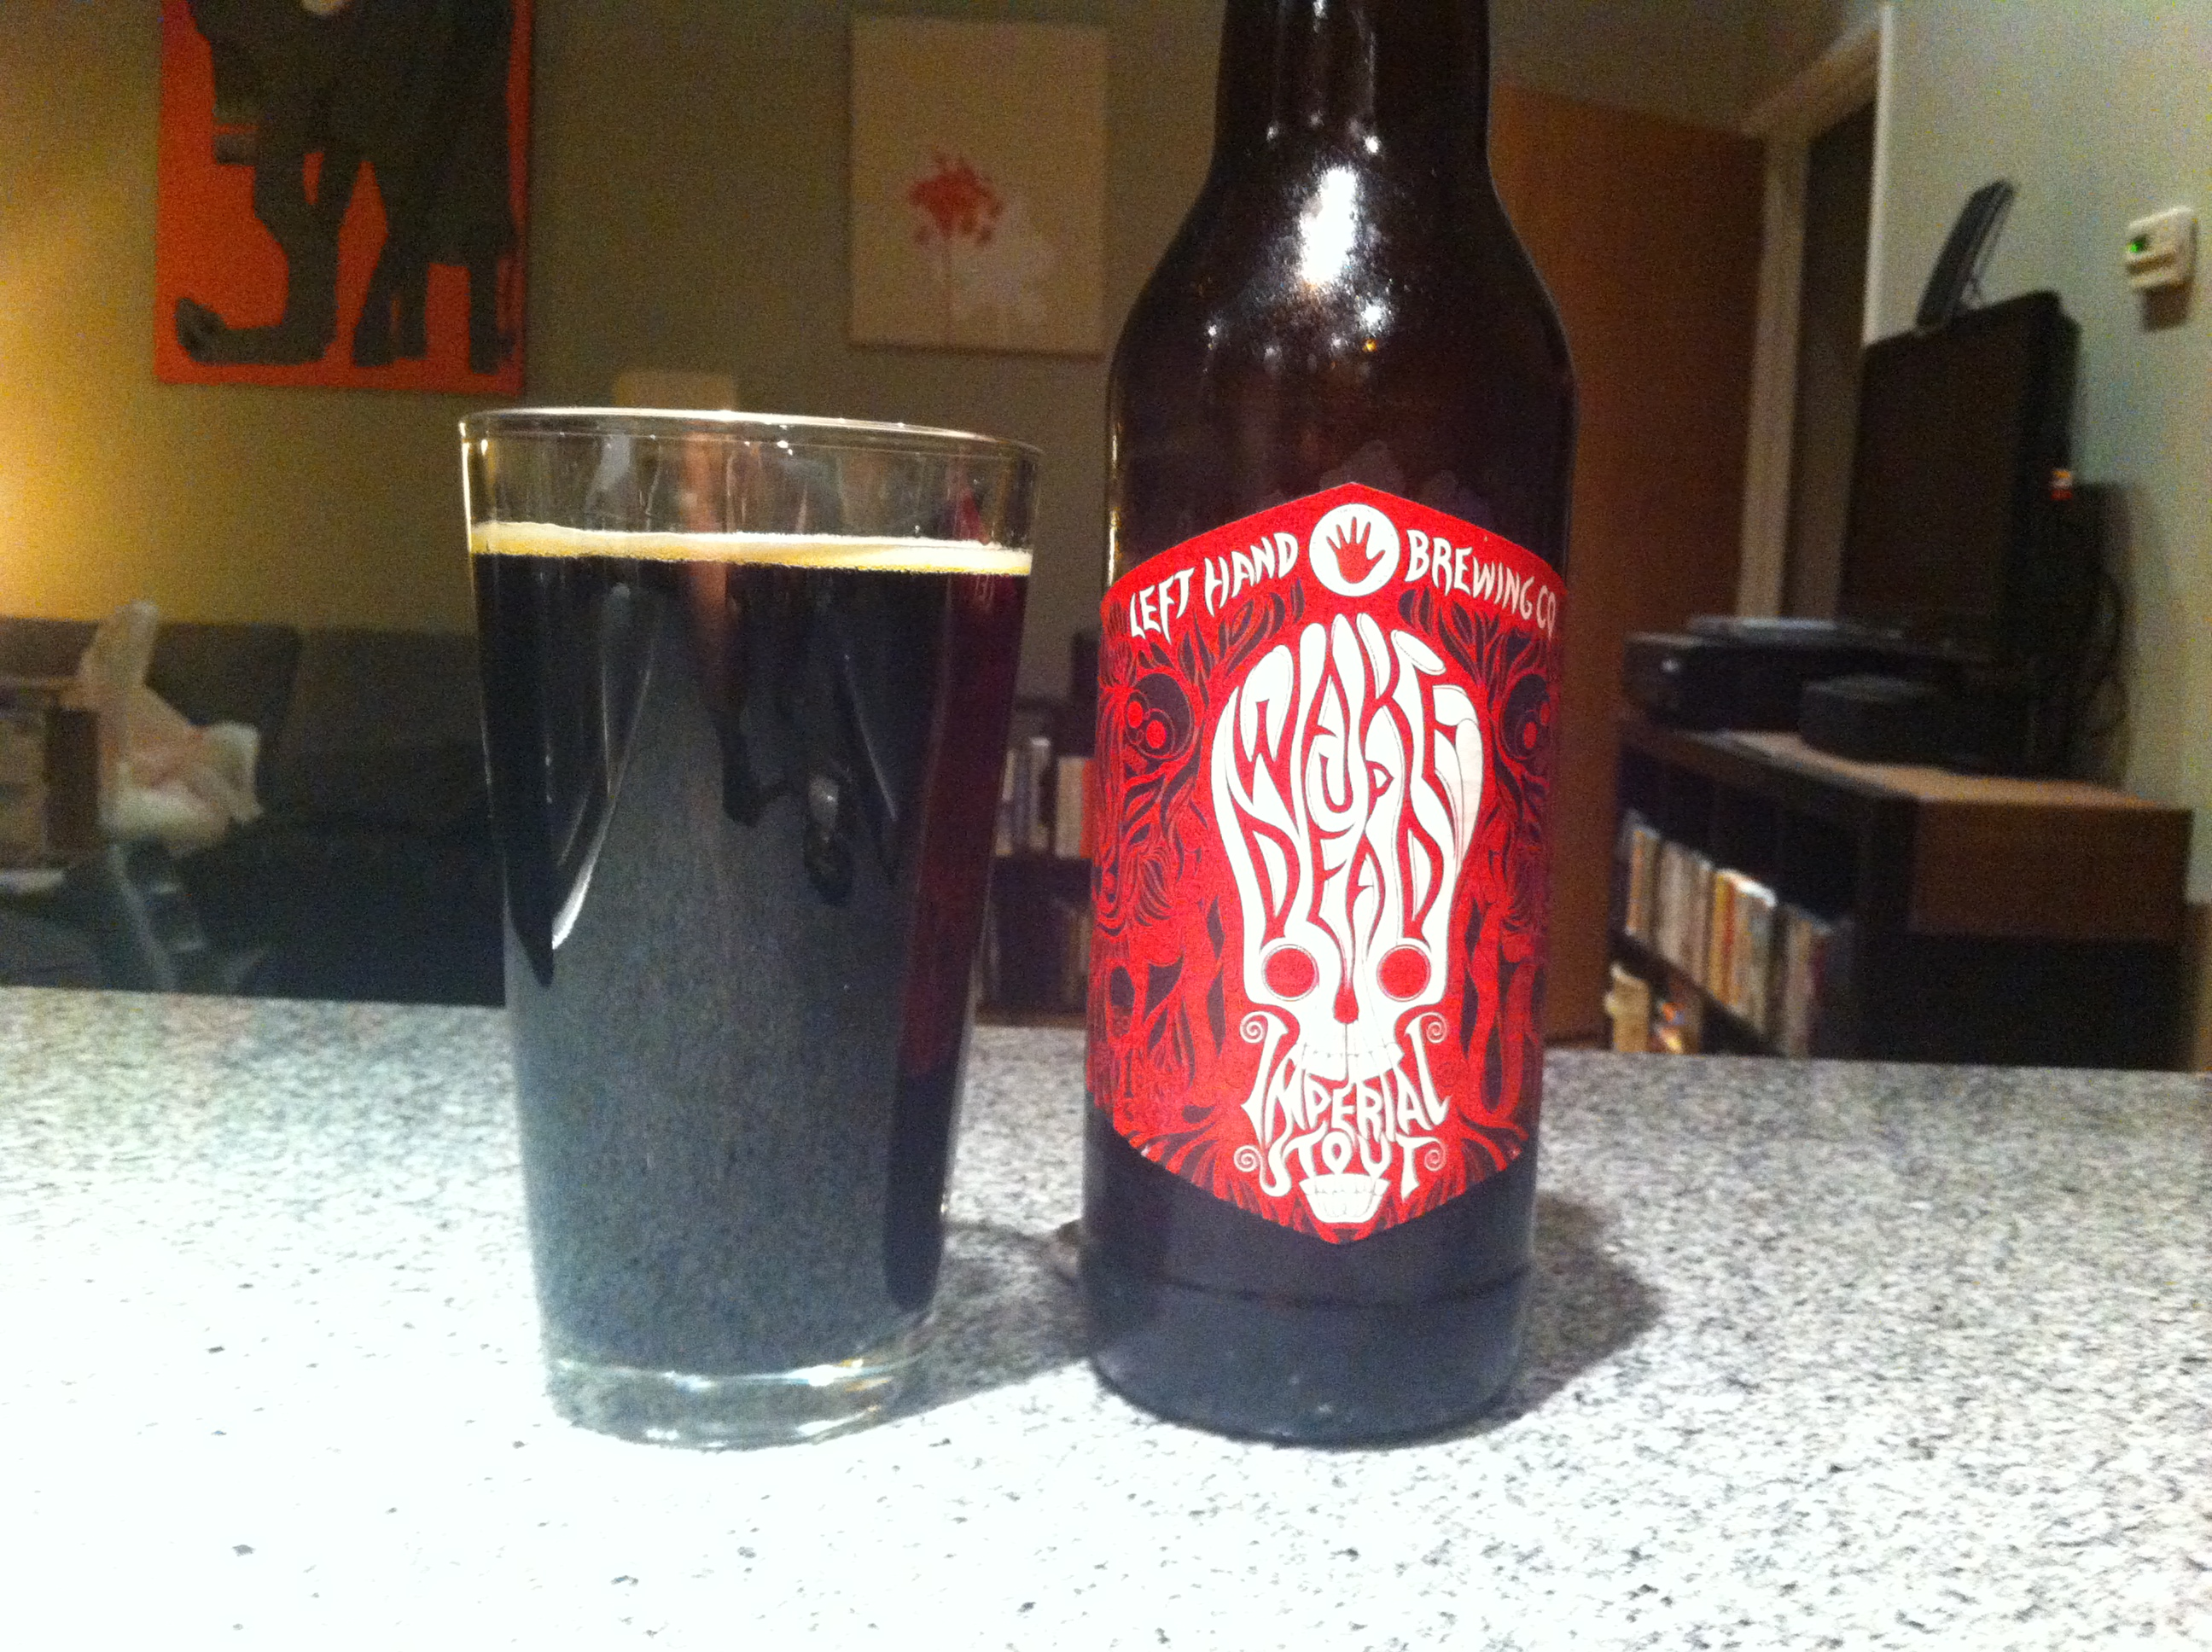 Left Handed Brewing Co. Wake up the Dead